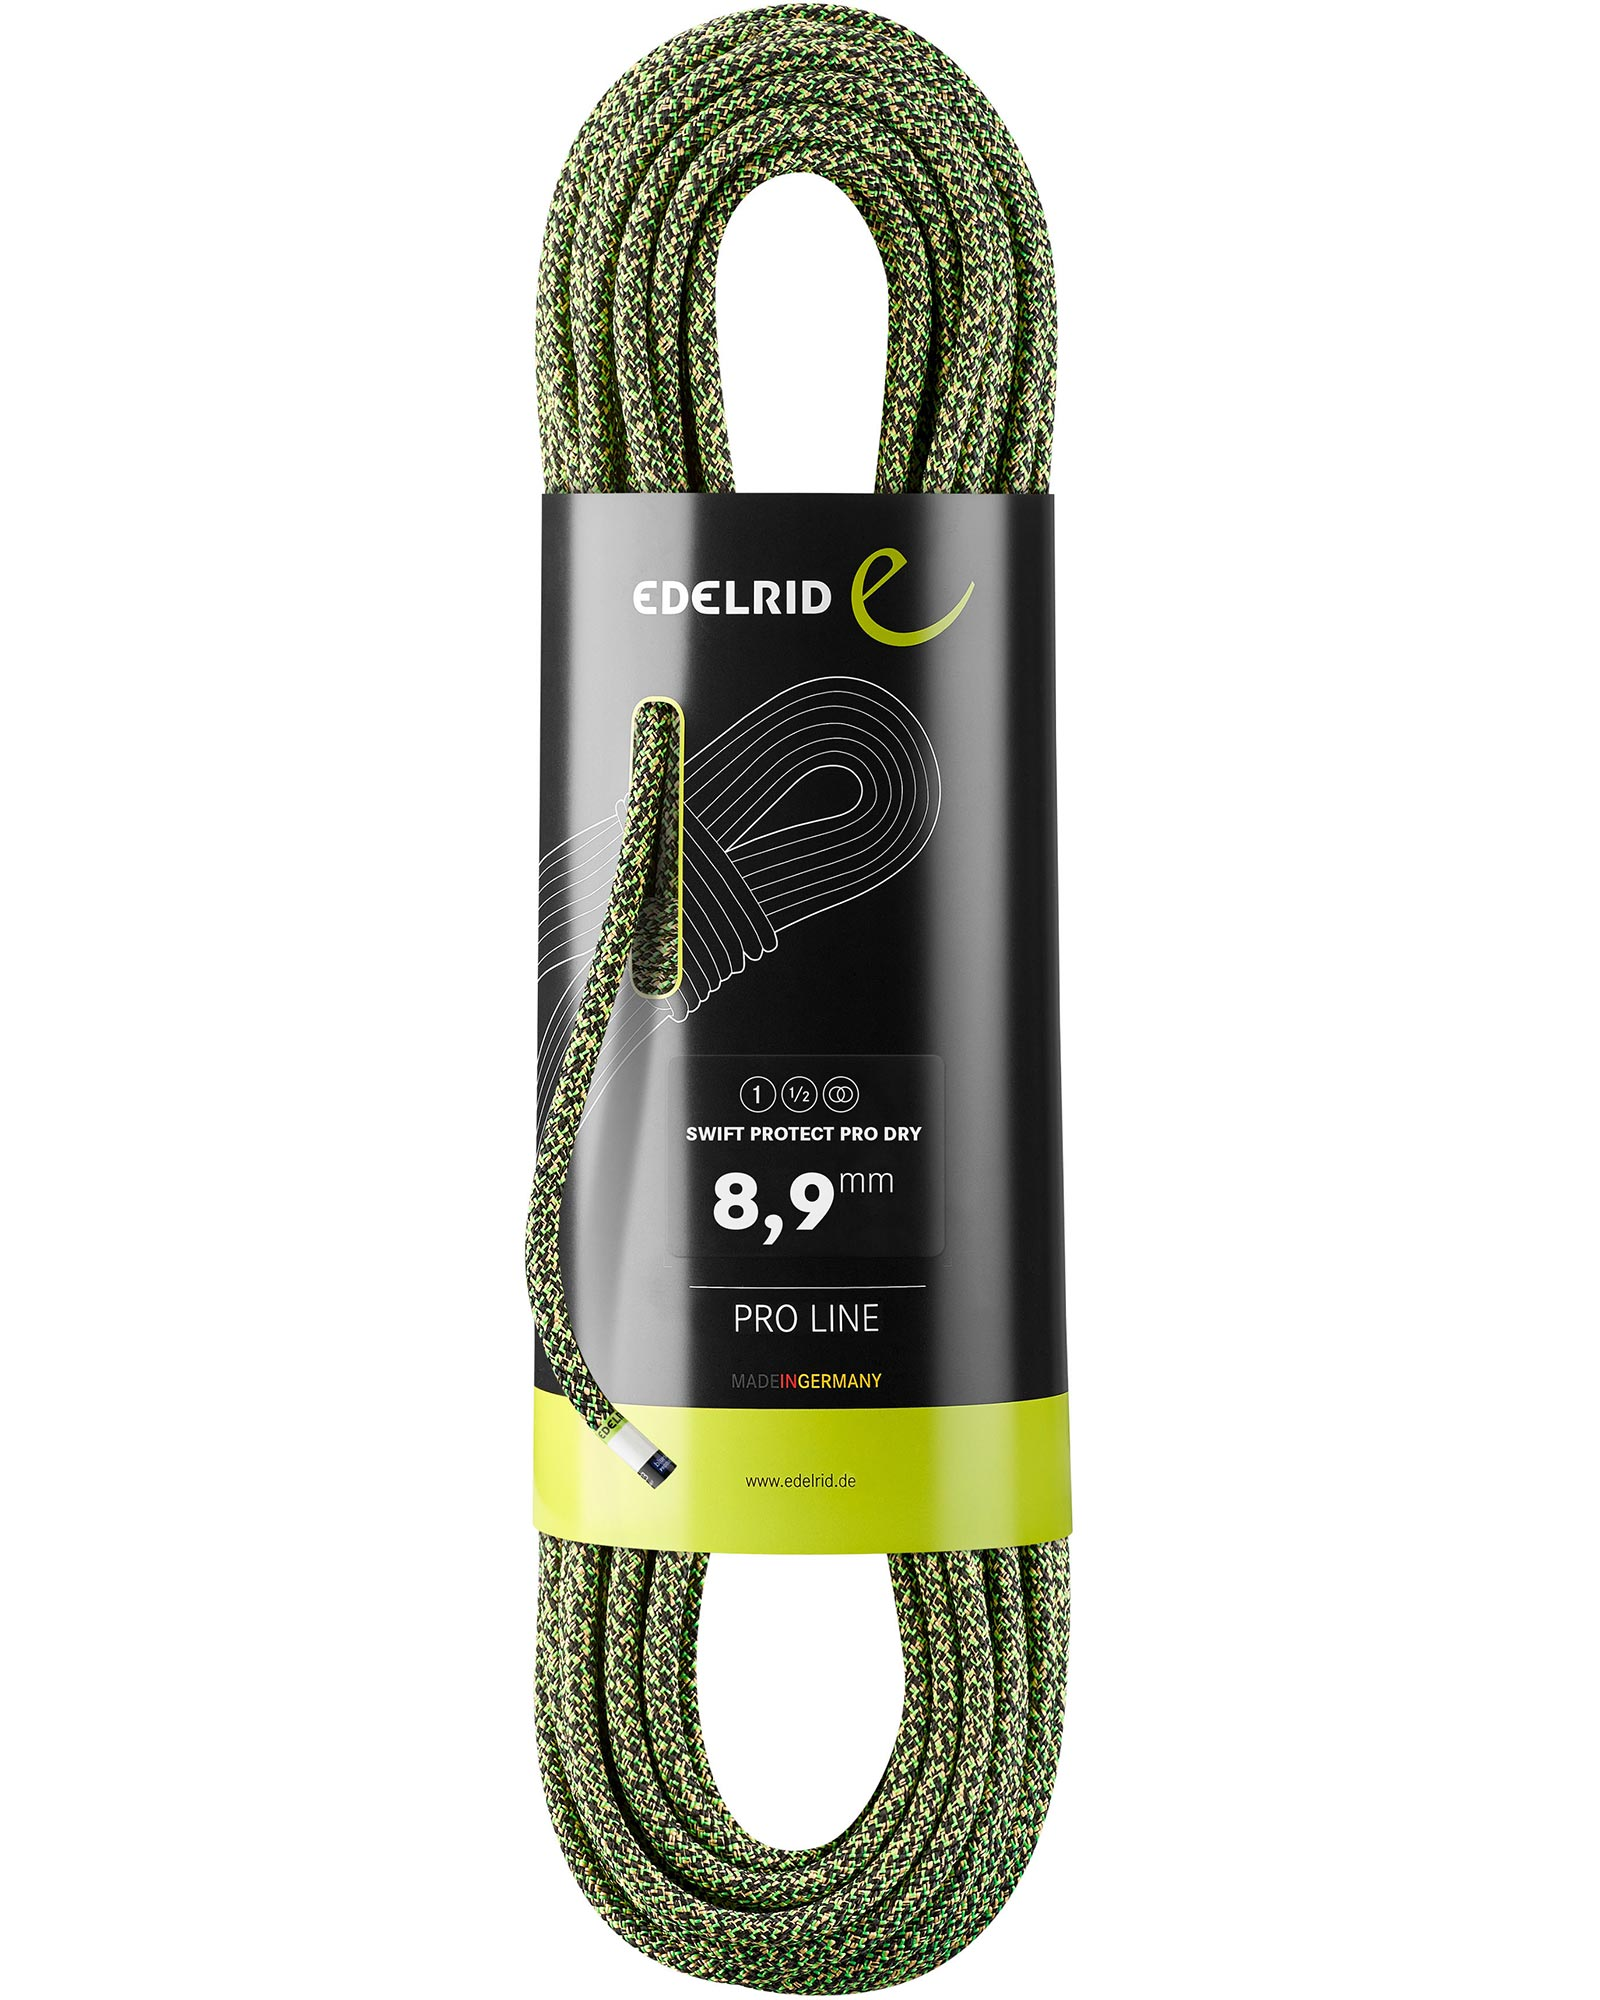 Edelrid Swift Protect Pro Dry 8.9mm x 60m Rope 0